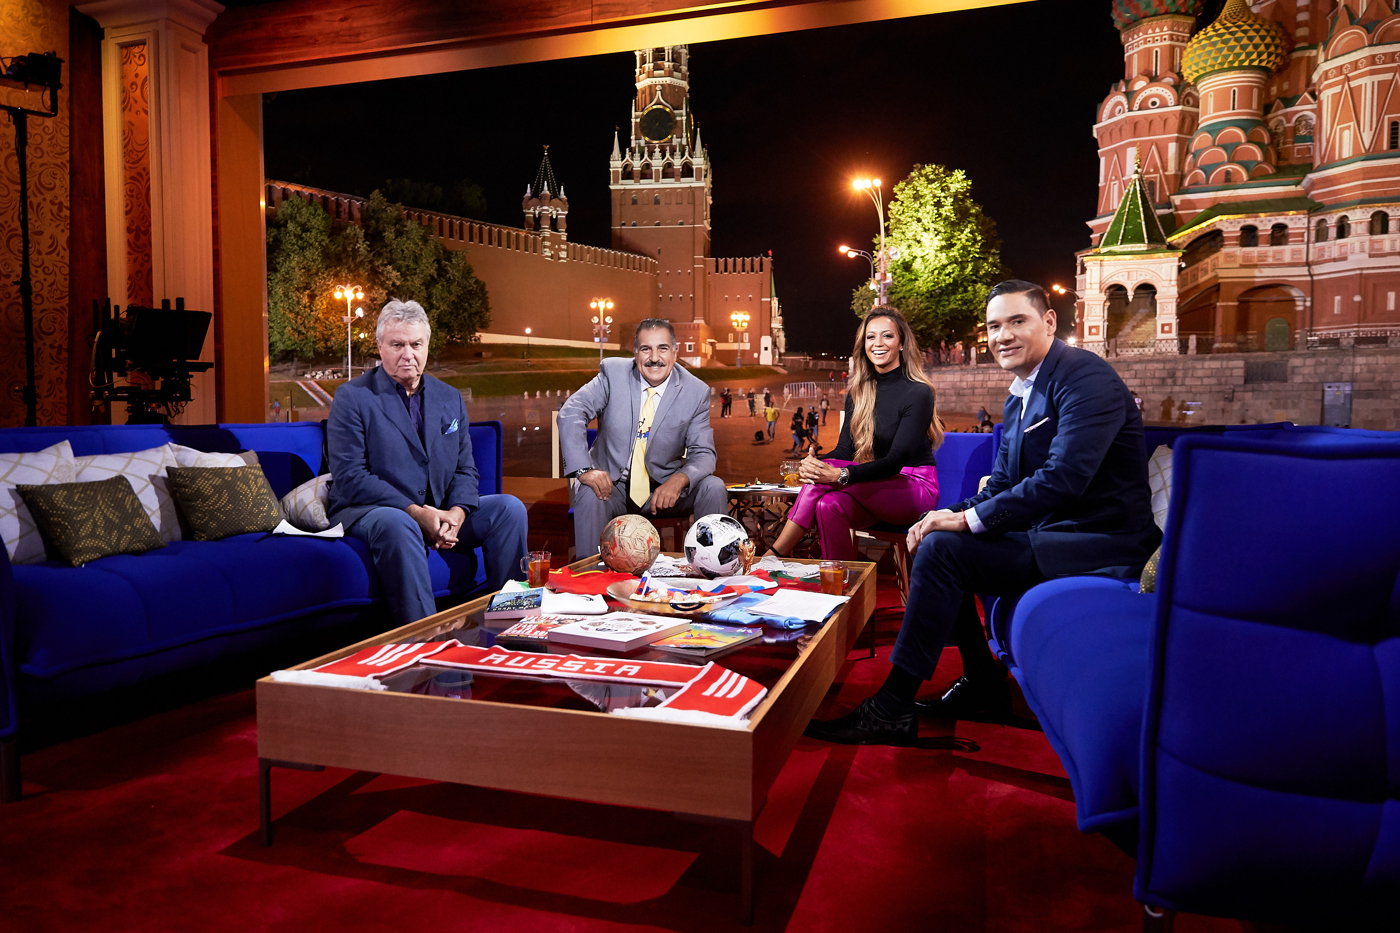 FOX Sport studio during 2018 FIFA World Cup at the Red Square on June 25, 2018 in Moscow, Russia. (Photo by Oleg Nikishin special for FOX Sport)